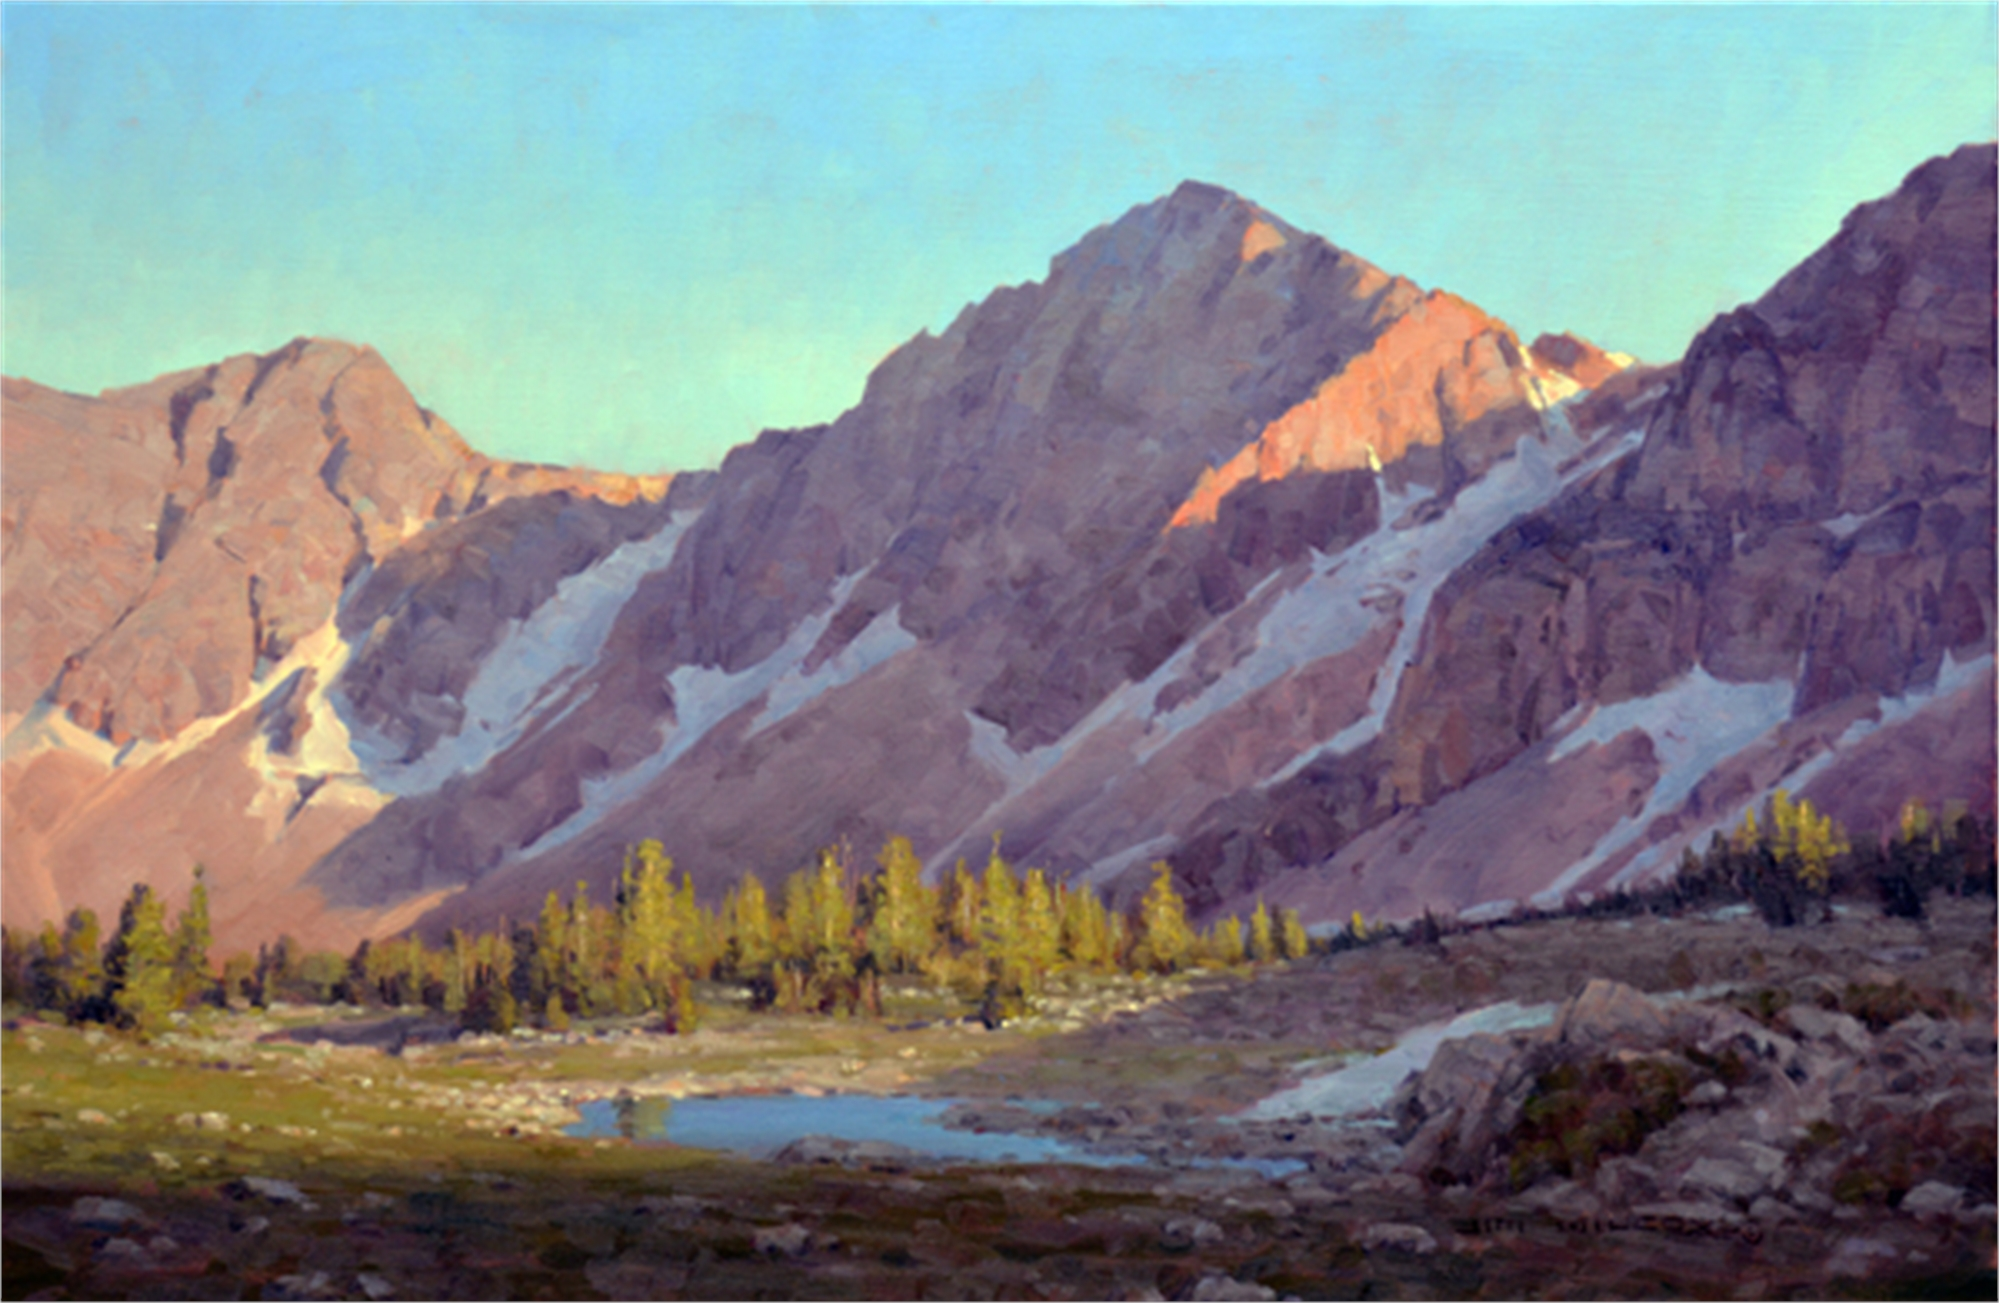 Paintbrush Divide by Jim Wilcox